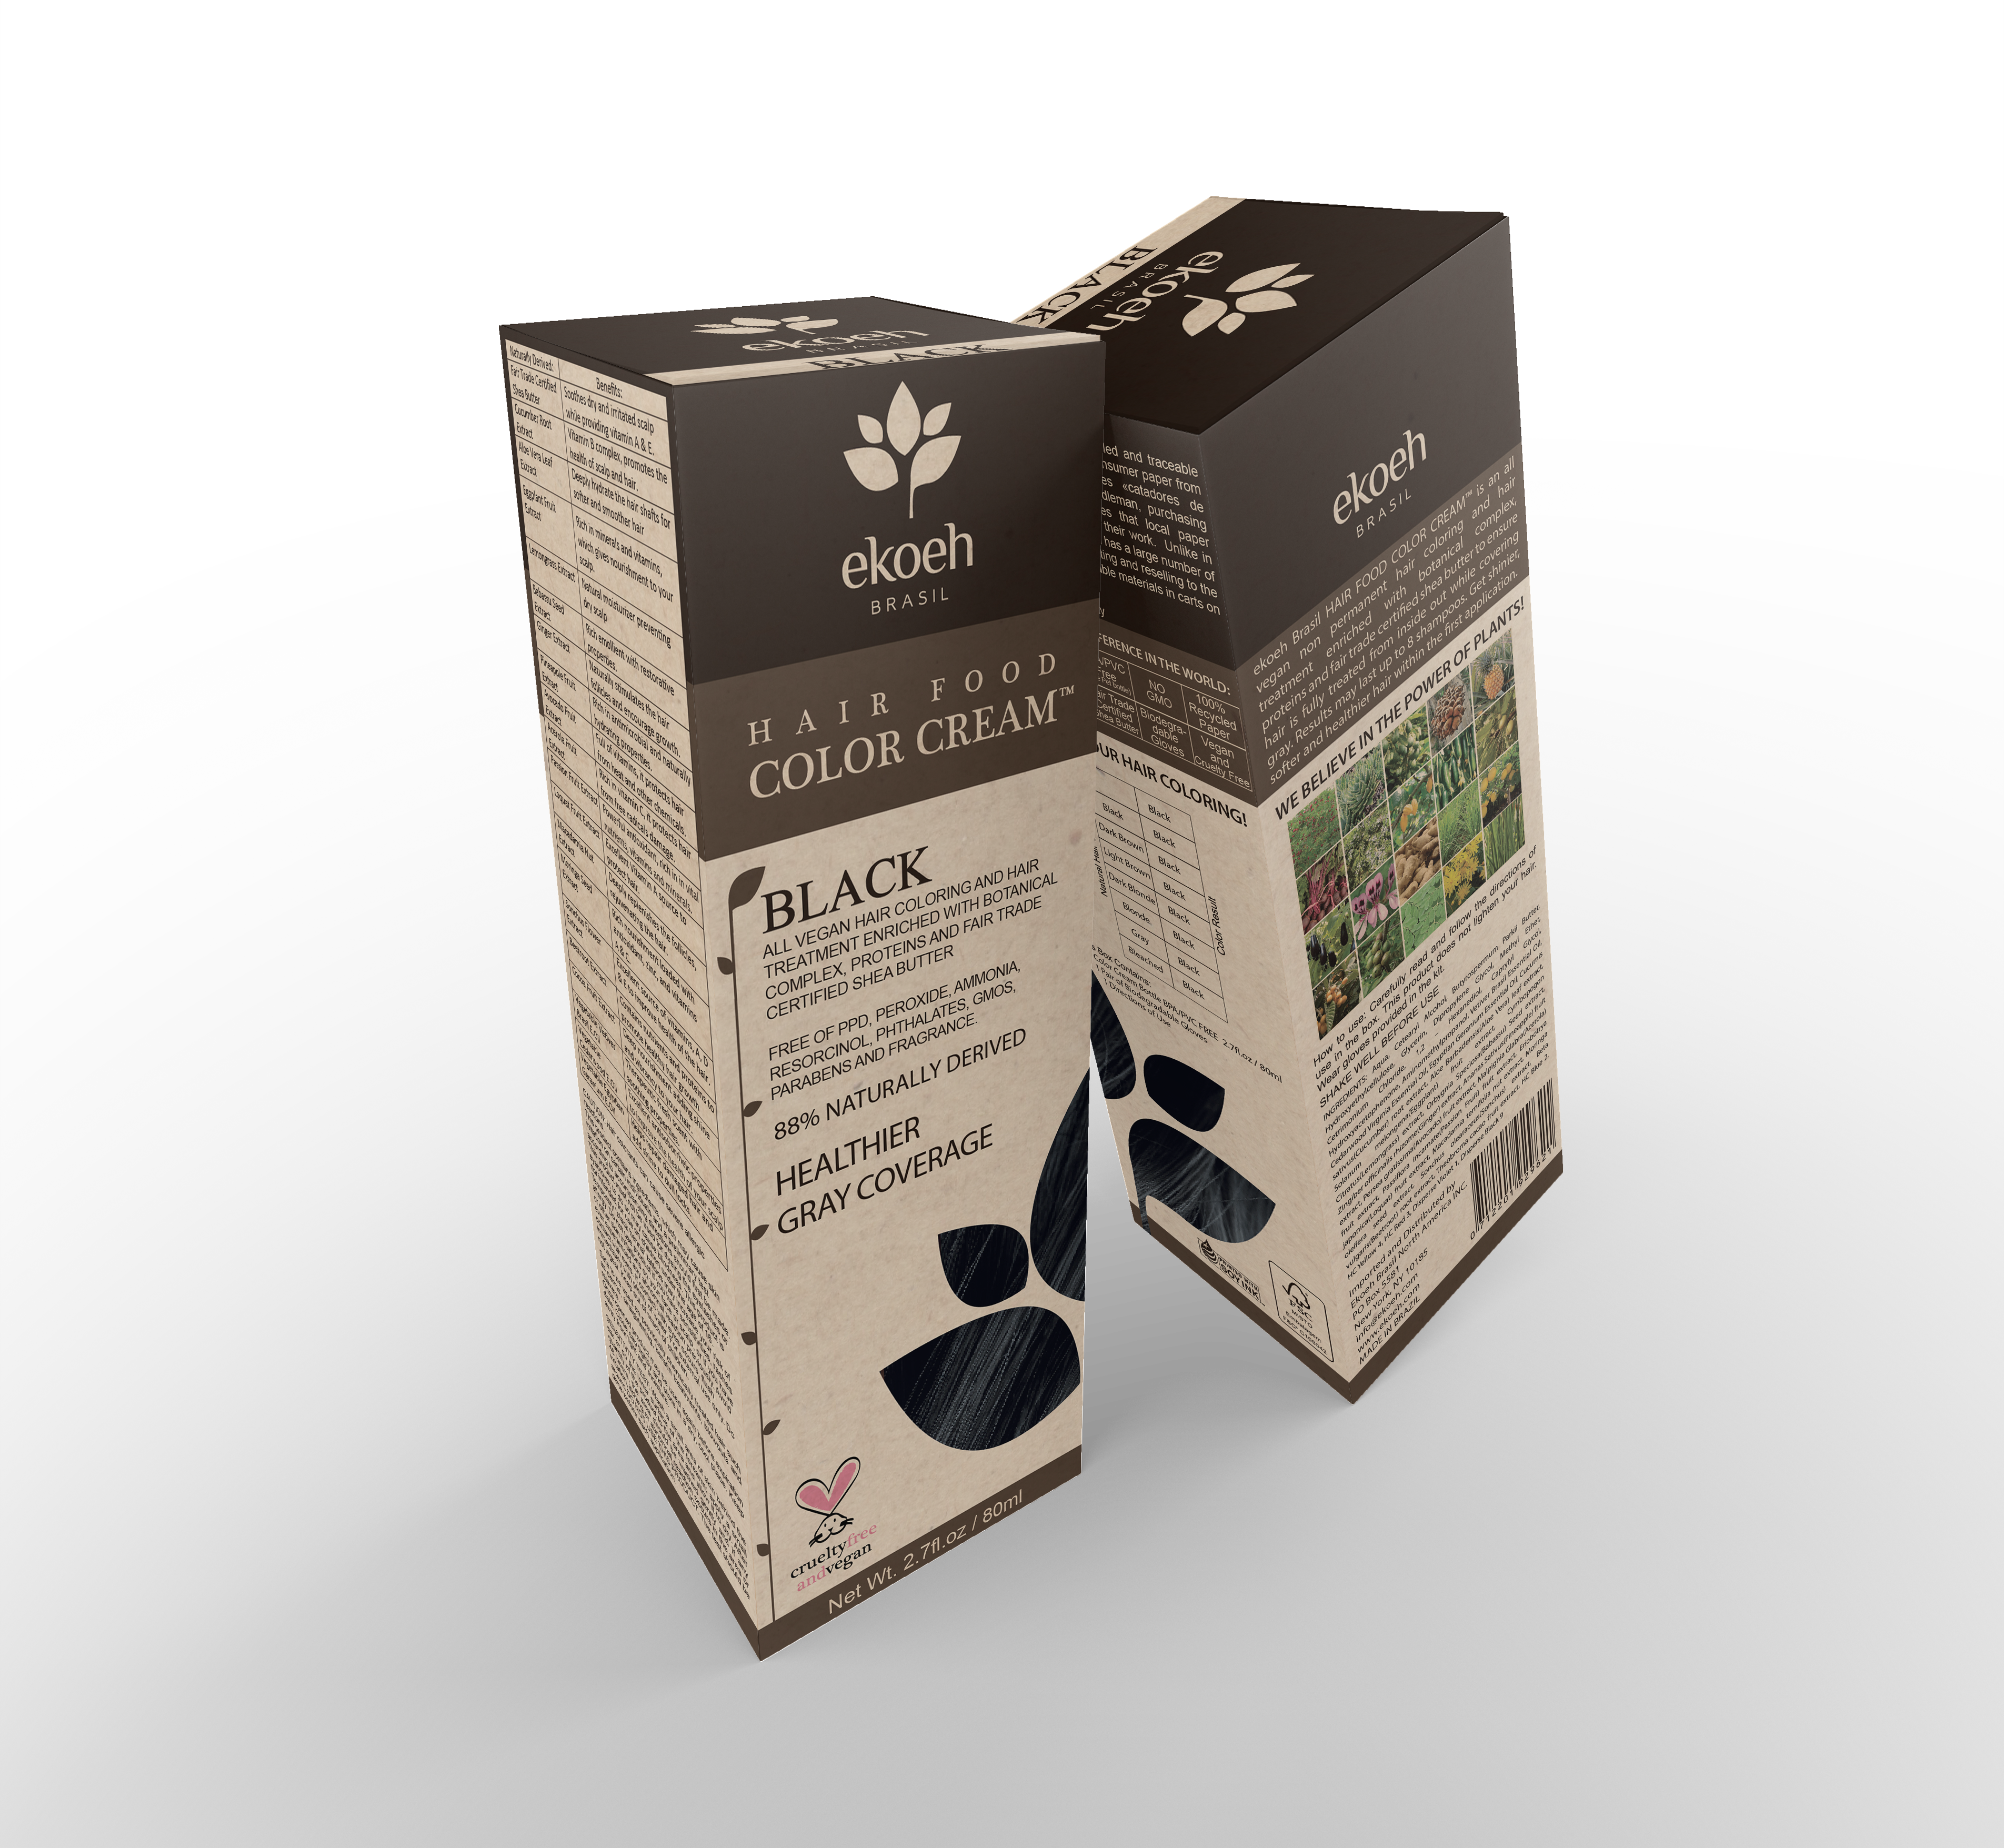 Product 3D imagery